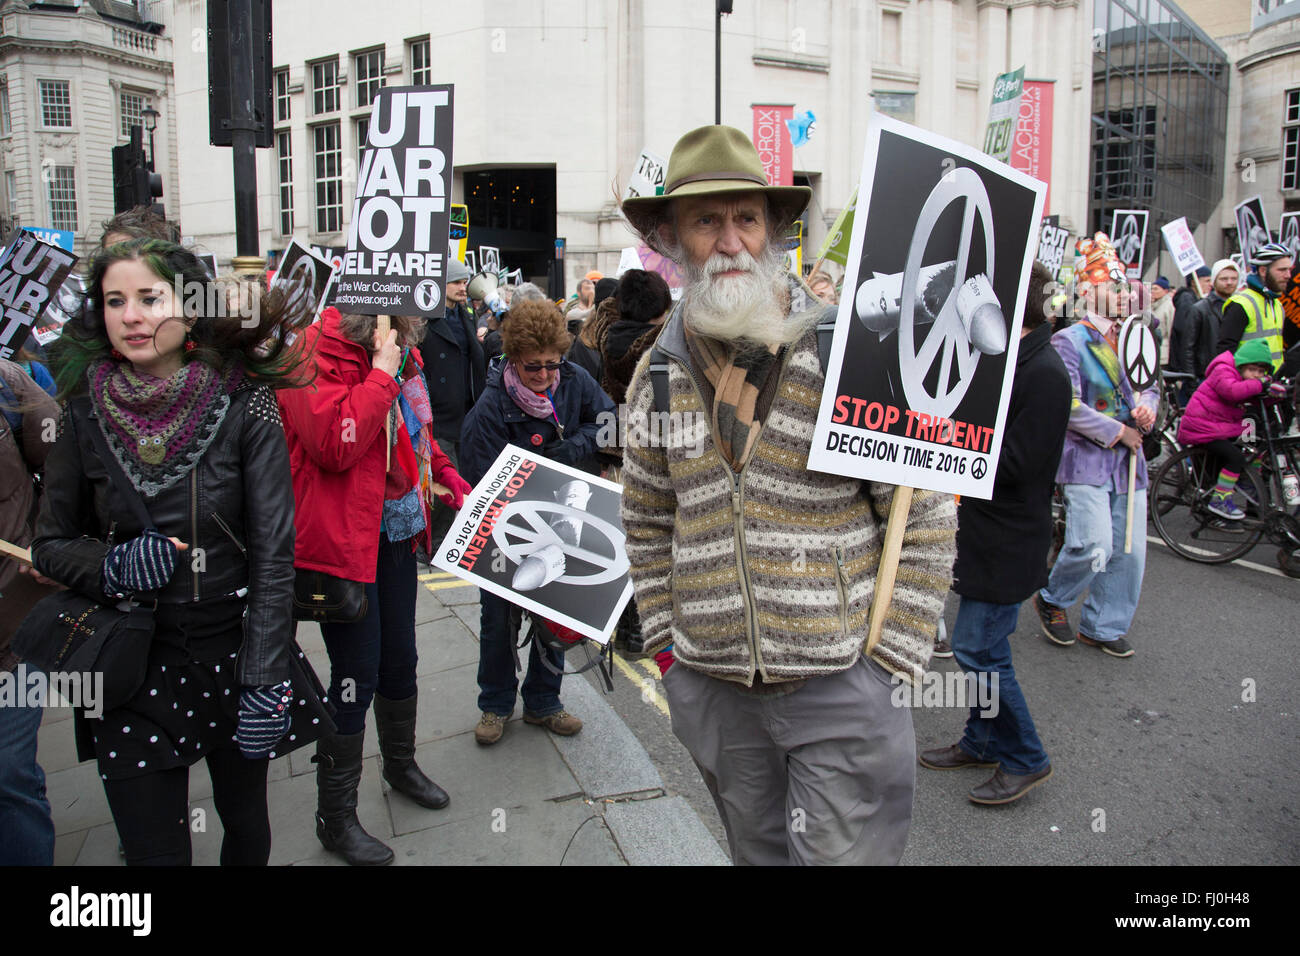 London, UK. Saturday, February 27th 2016. Stop Trident: CND demonstration against Britain's Trident nuclear - Stock Image